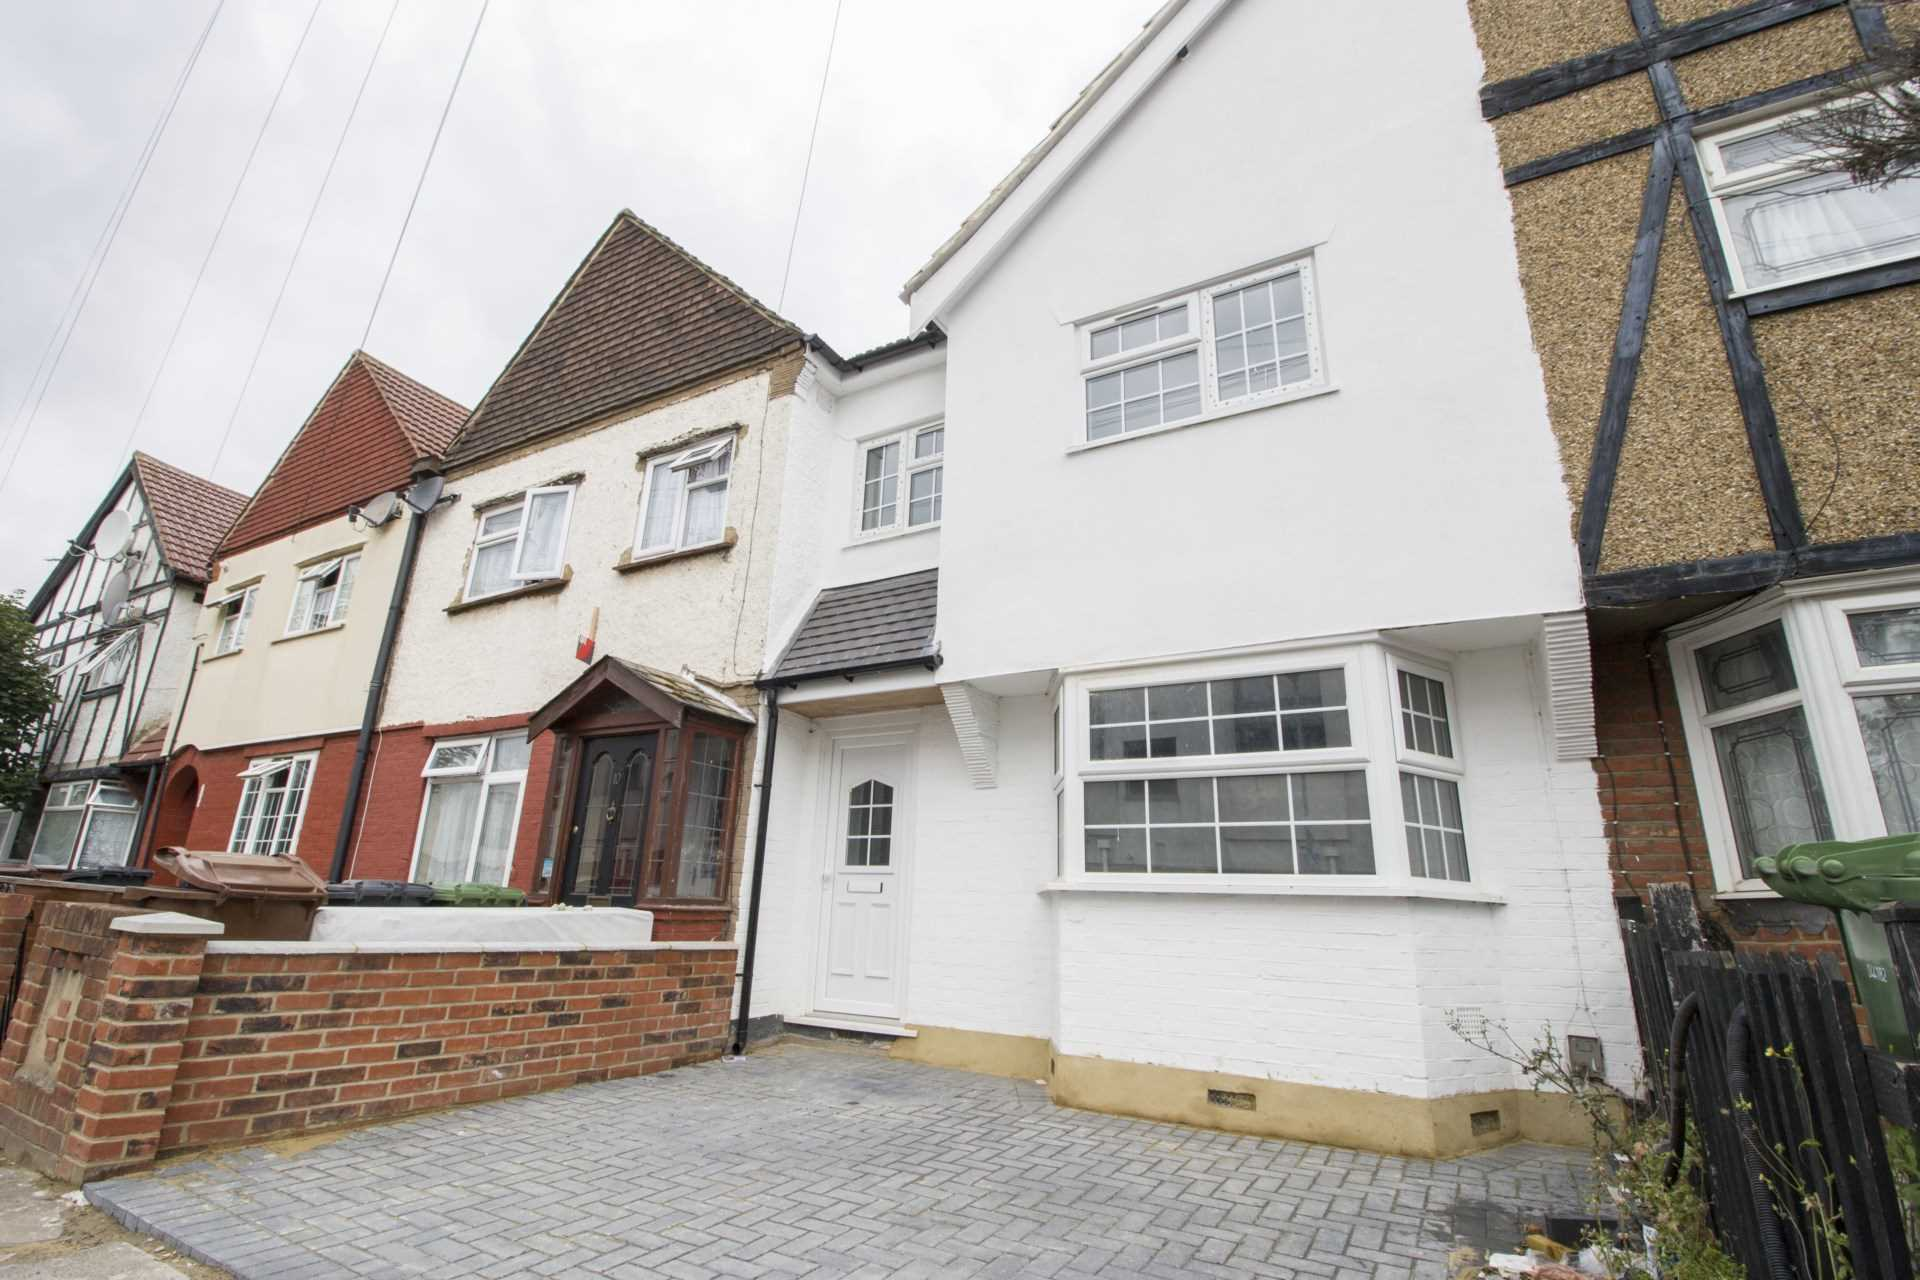 The Gables, Tanner Street, Barking, IG11, Image 1